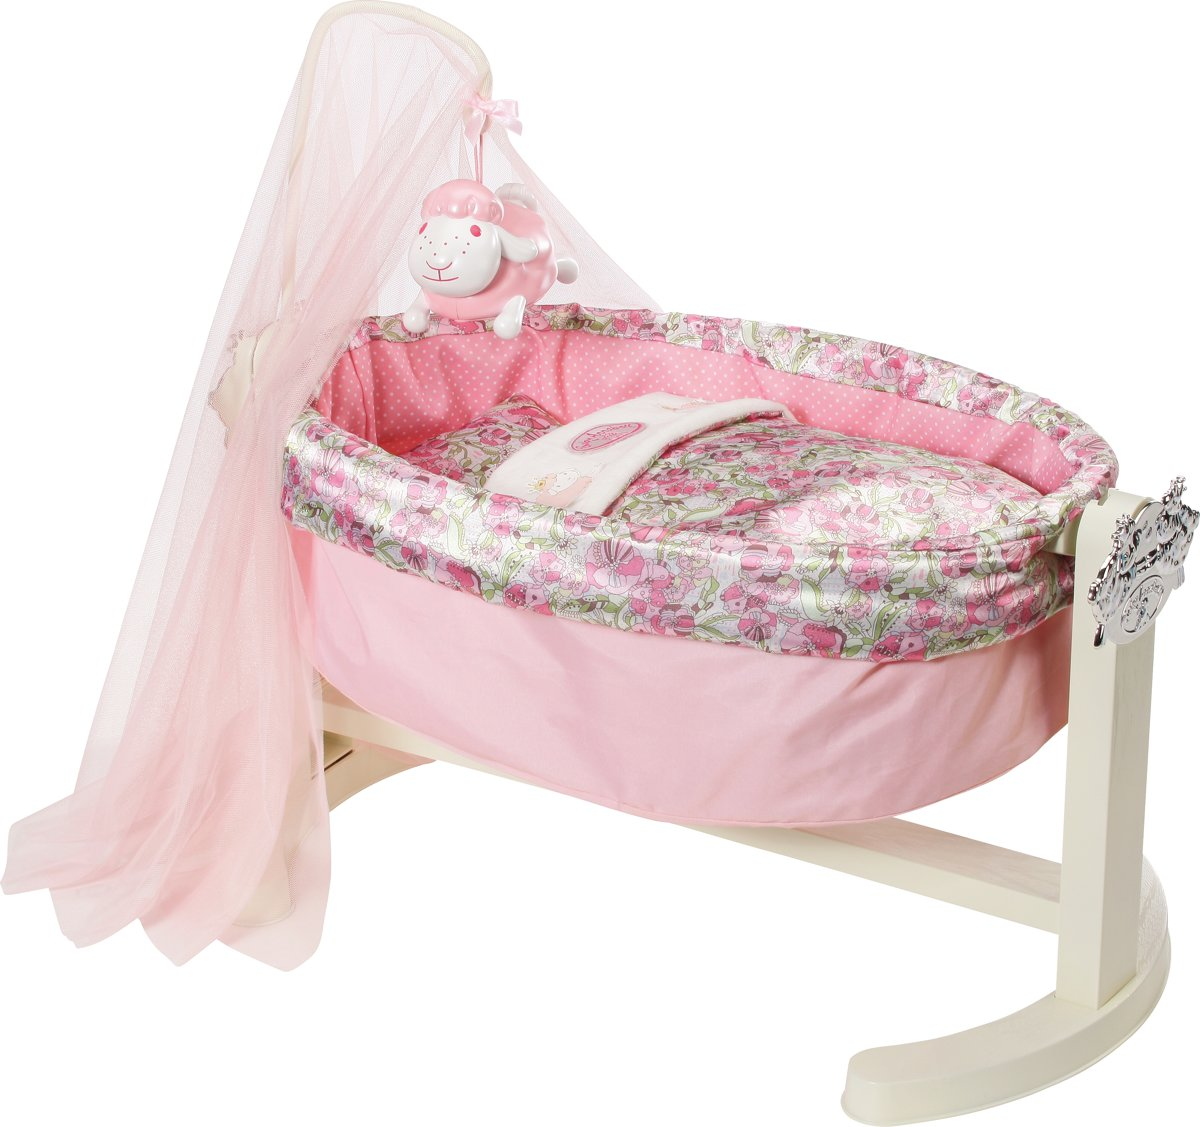 Baby Annabell Wieg - Poppenbed